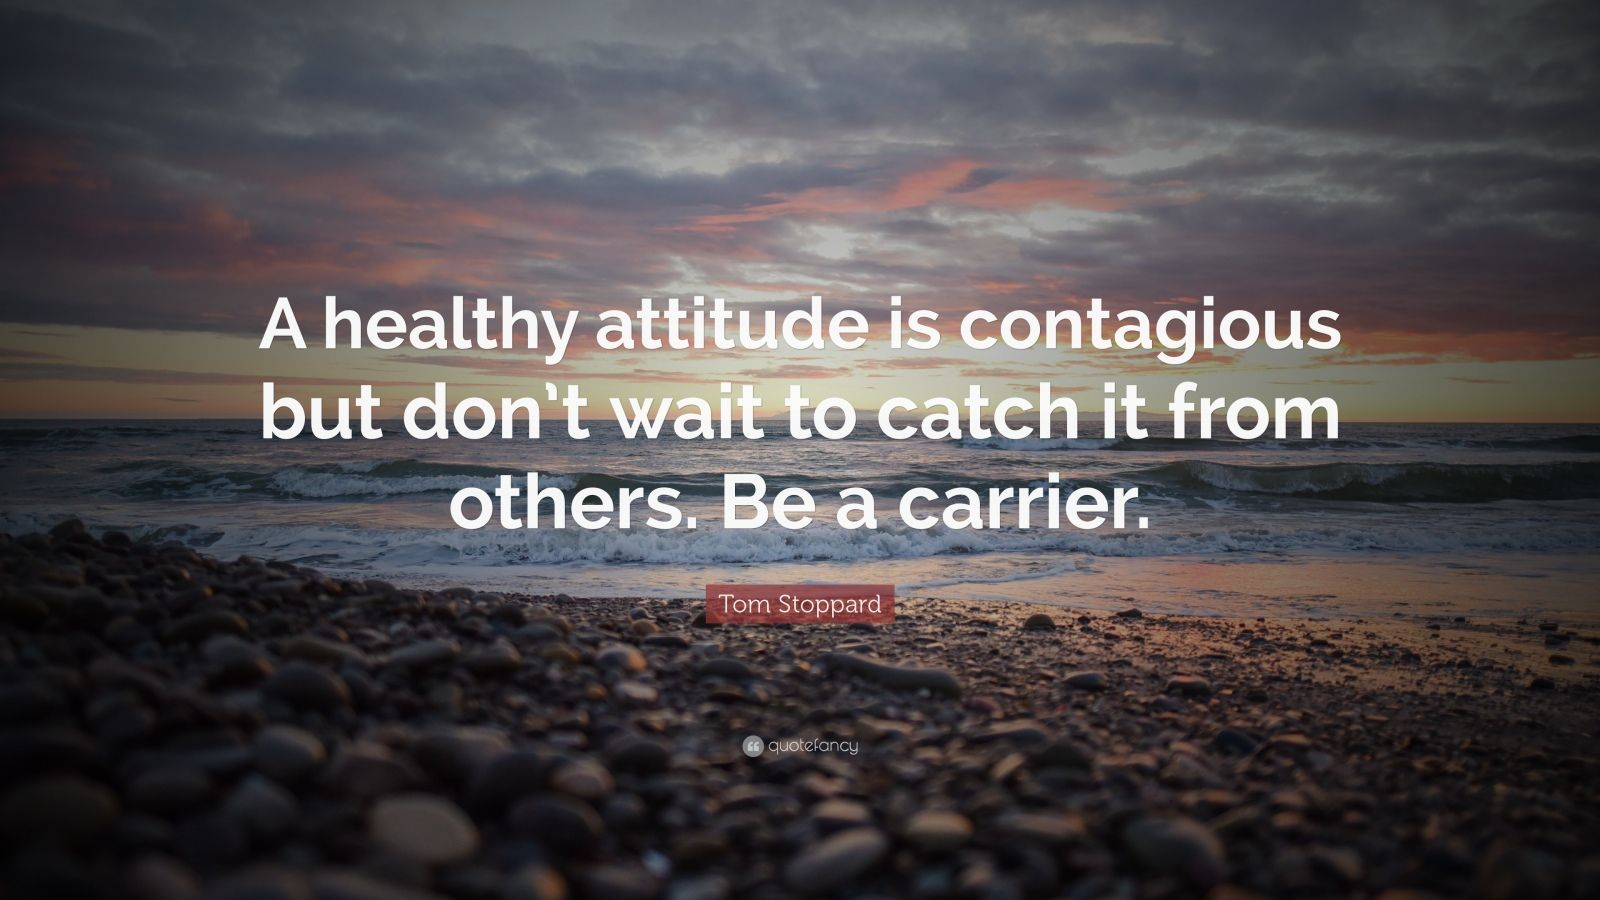 Albert Einstein Wallpaper Quotes Tom Stoppard Quote A Healthy Attitude Is Contagious But